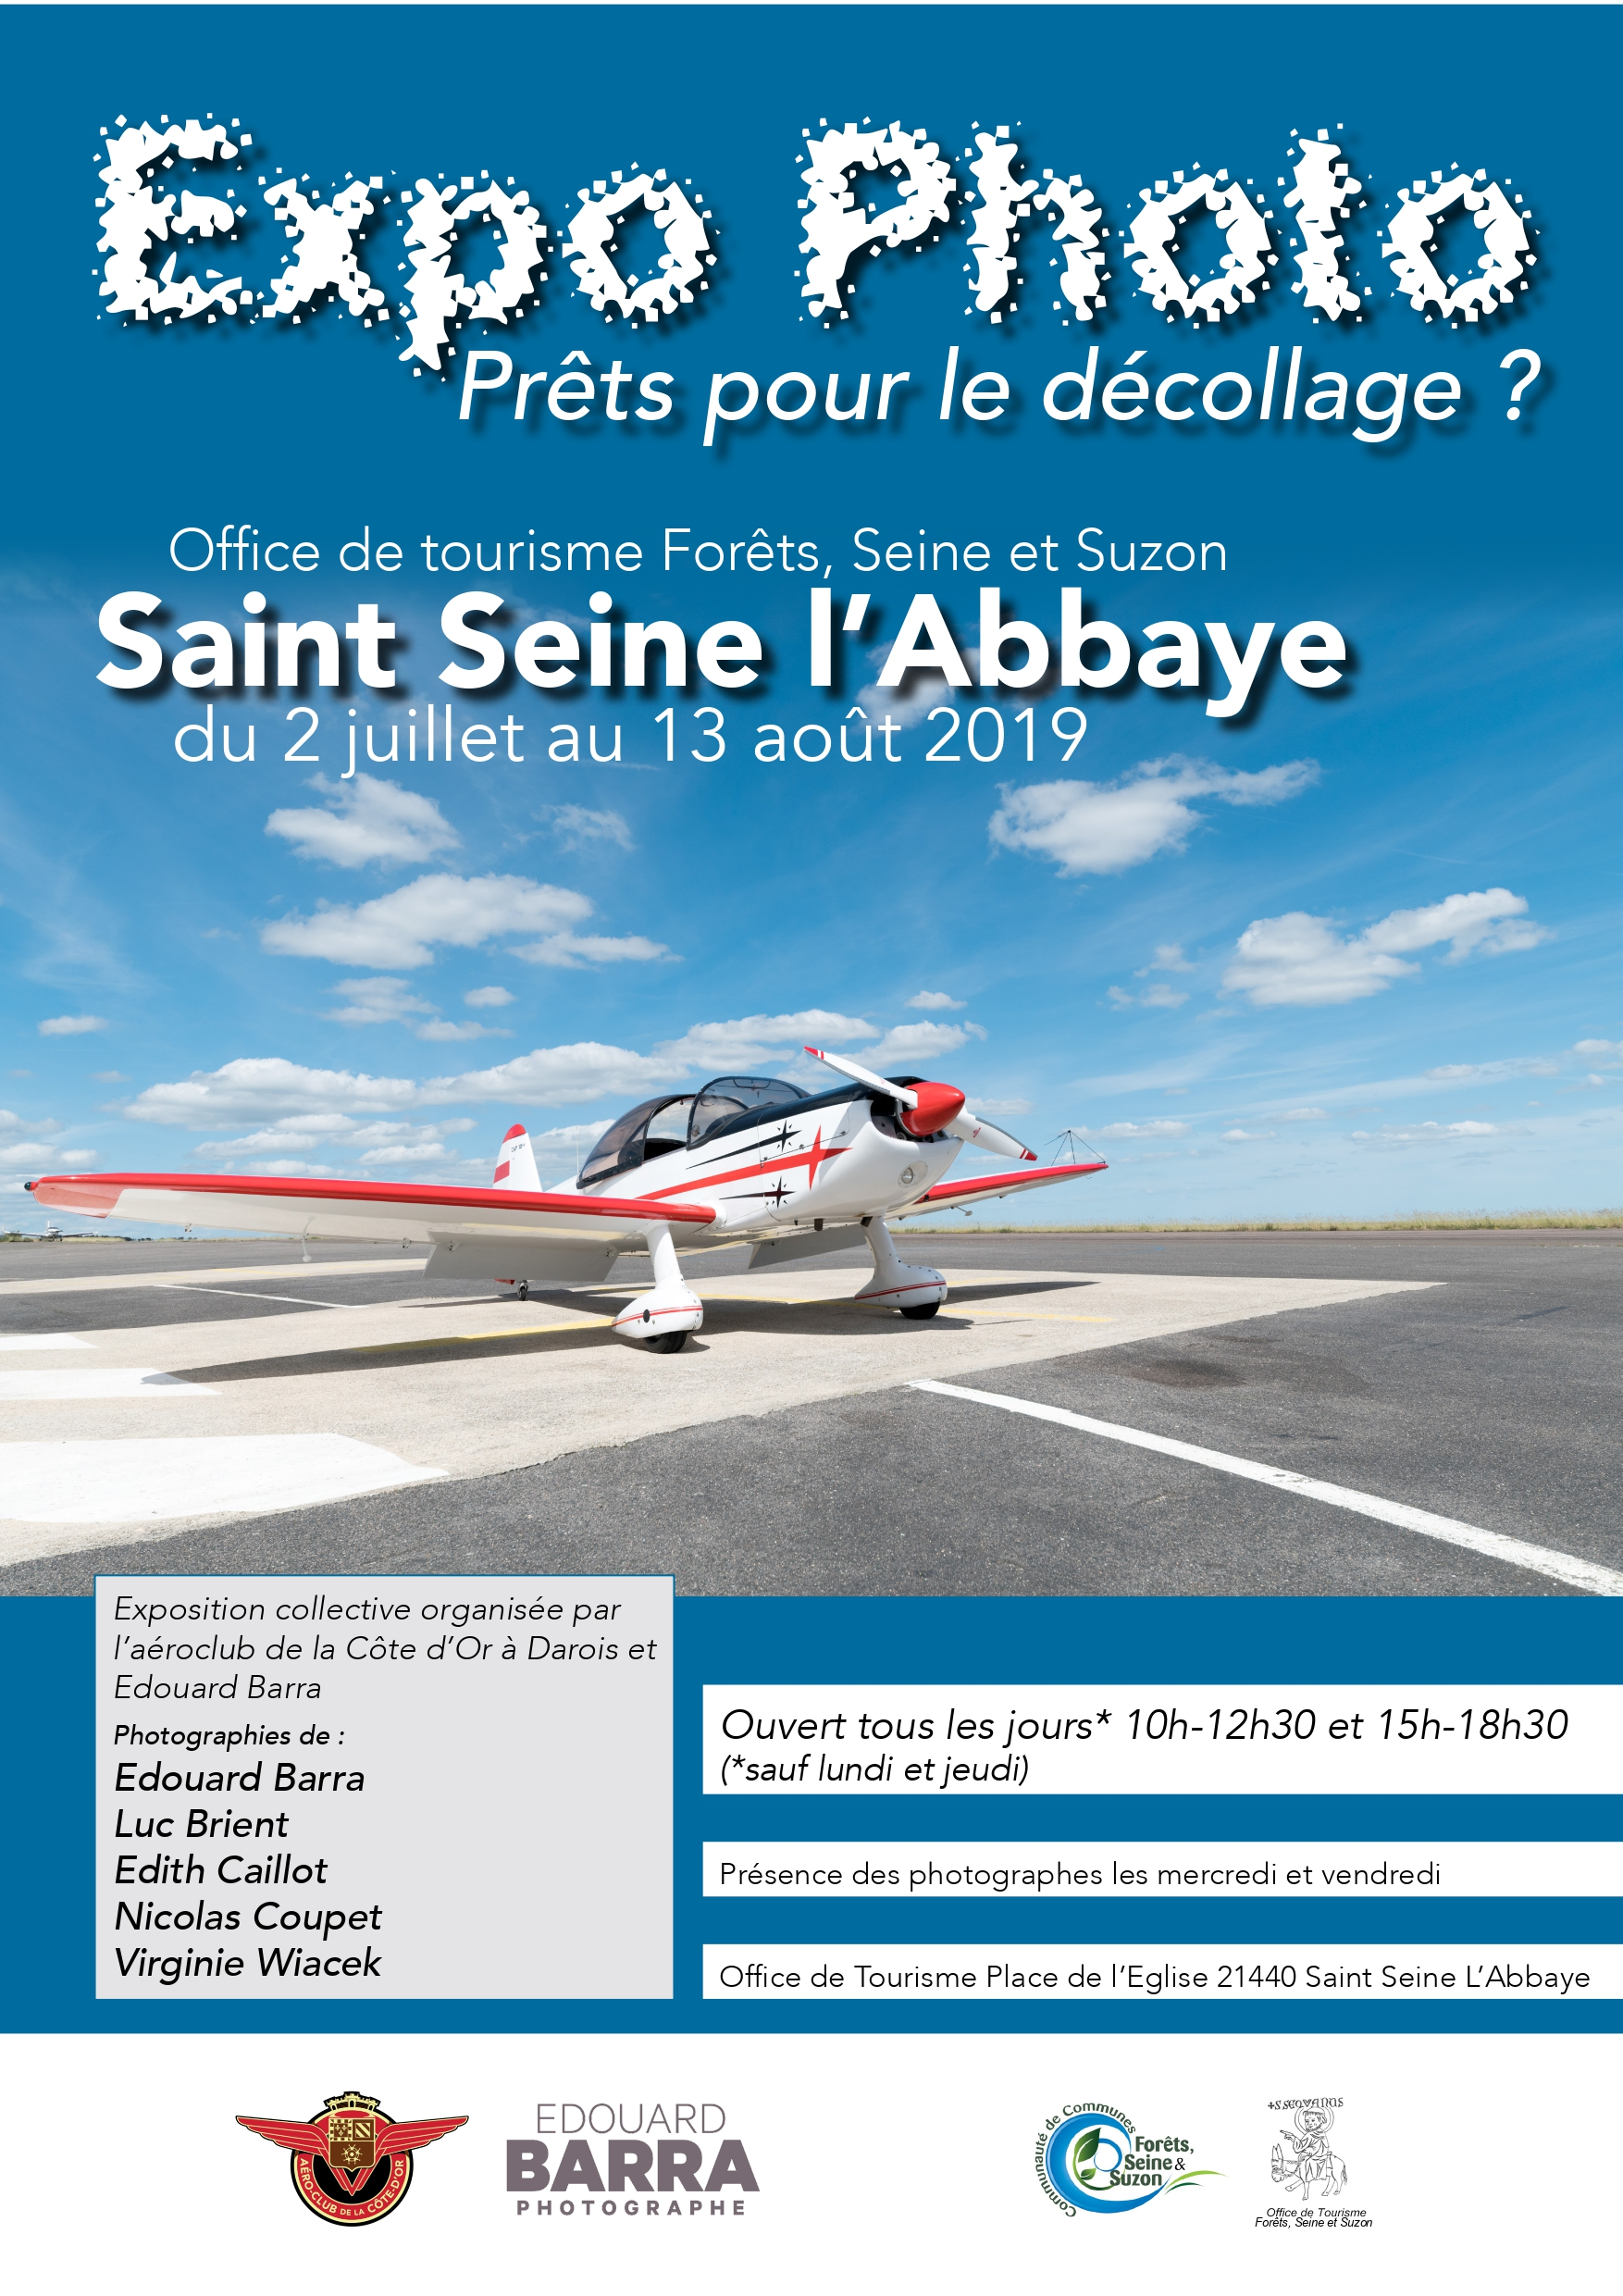 Affiche-expo-photo-Aeroclub - Edouard Barra